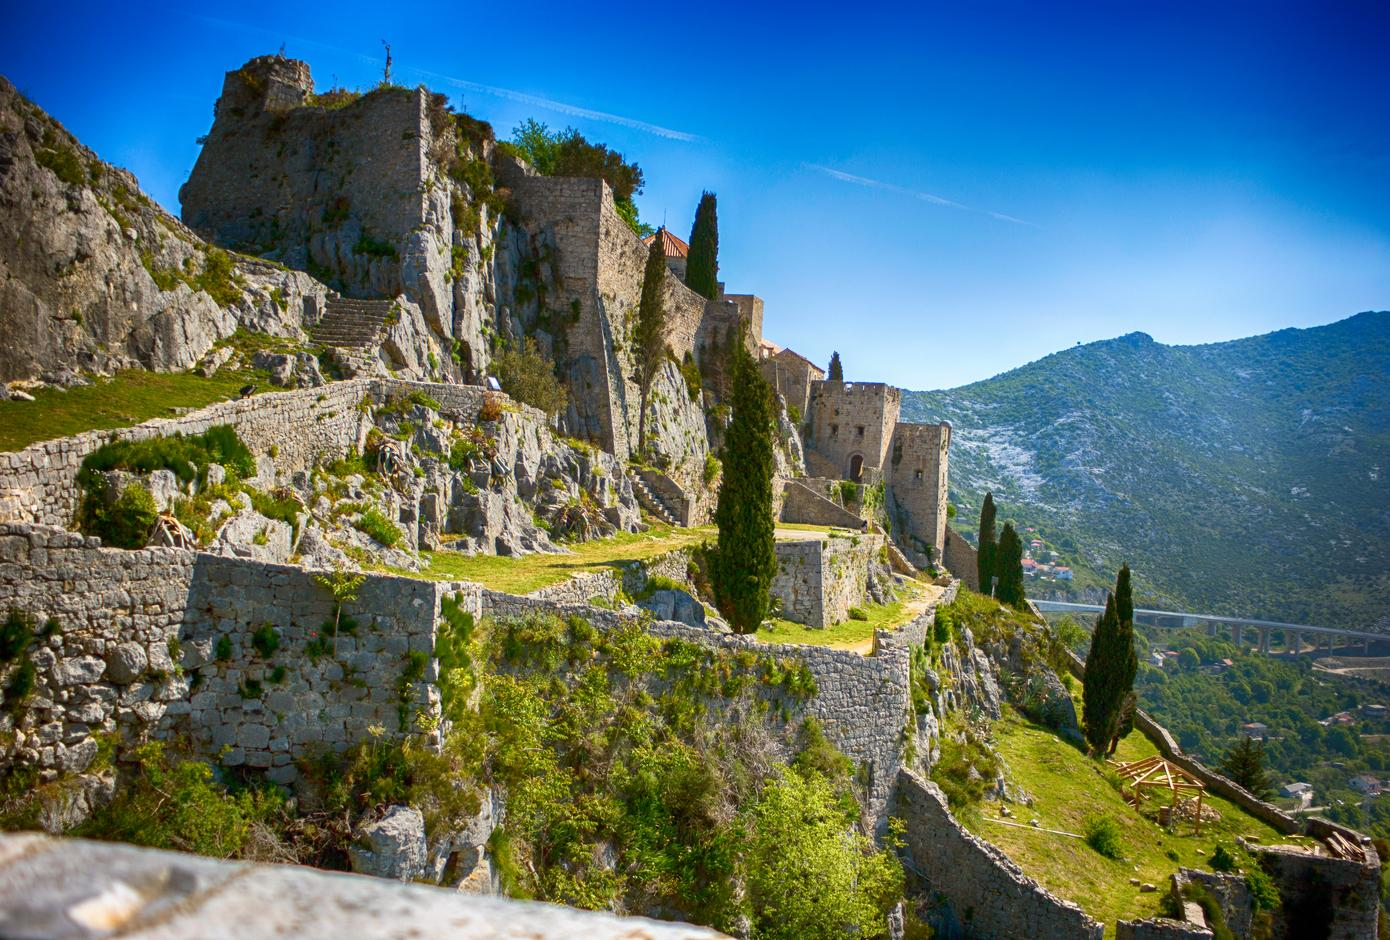 The Klis Fortress, located near Split, in Croatia.